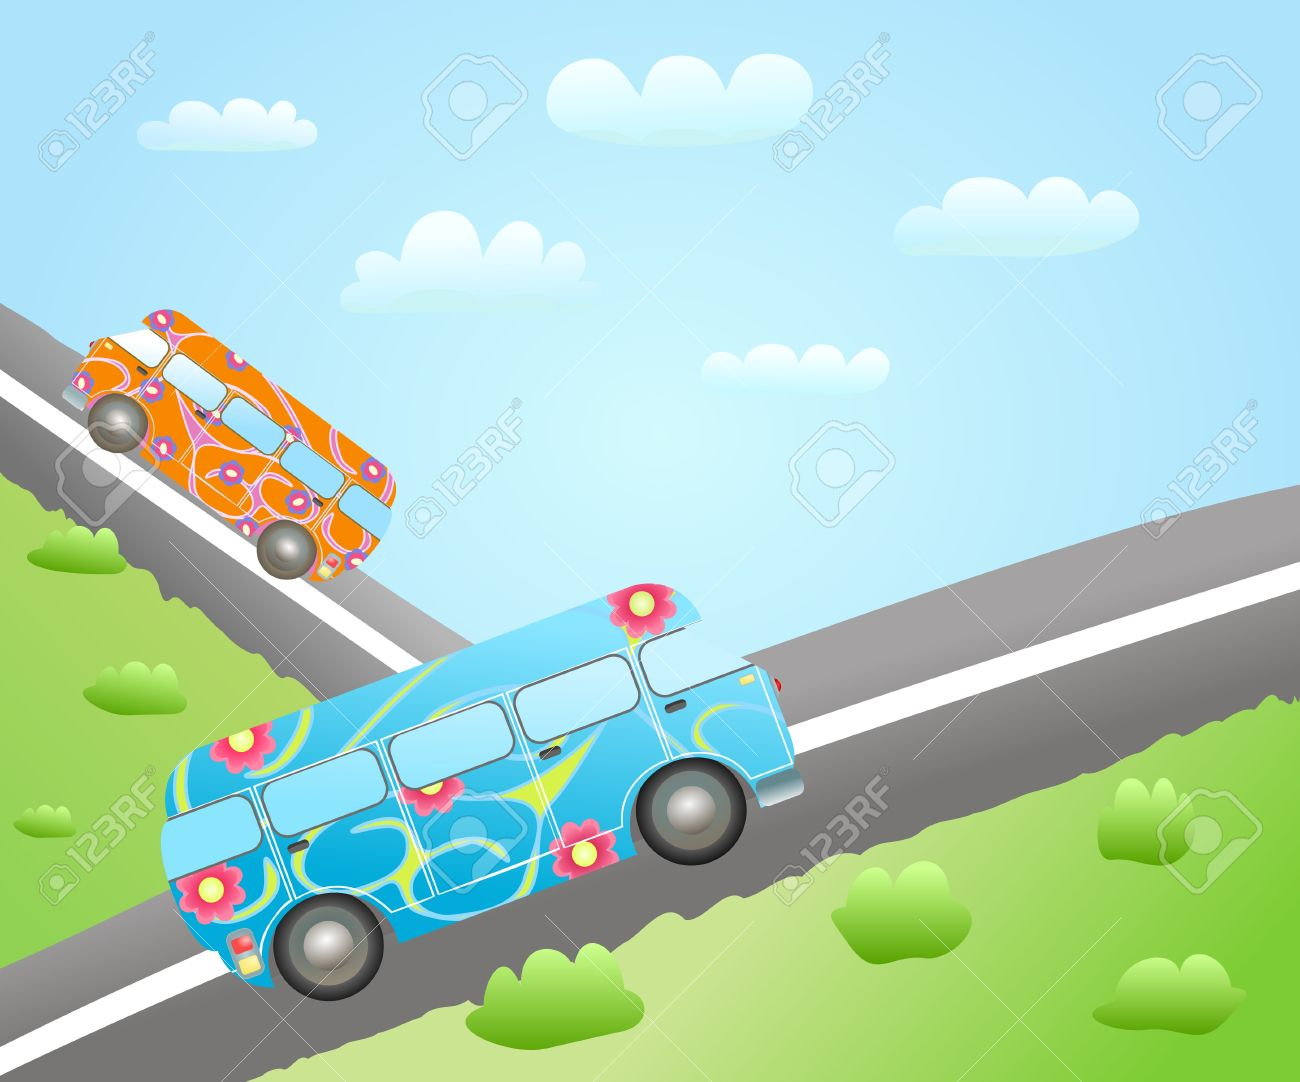 Routes clipart #9, Download drawings